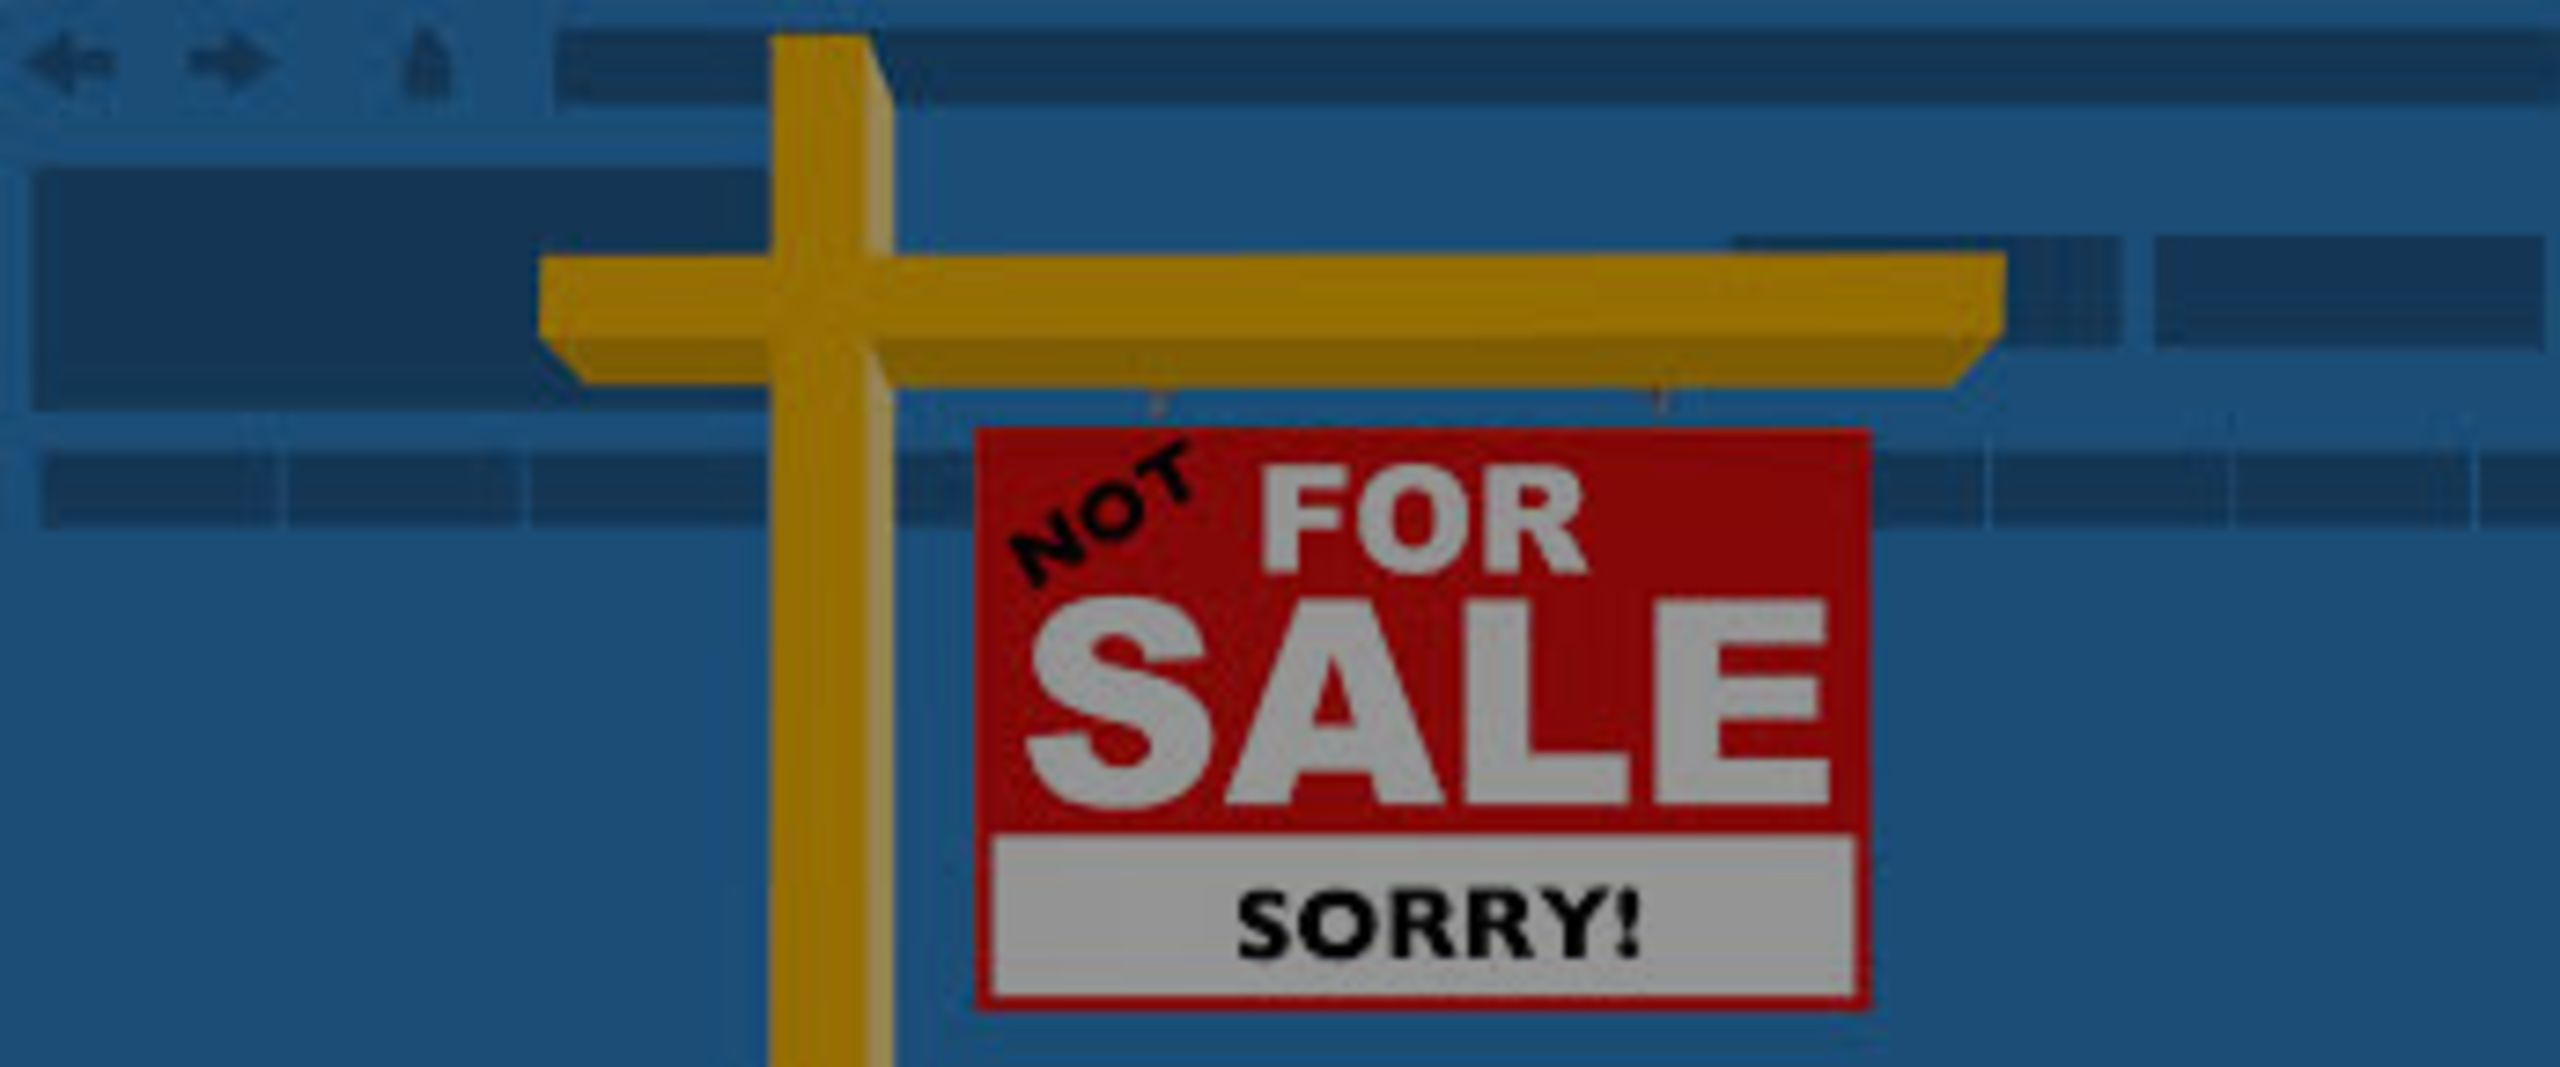 Owners have some reasons not to sell